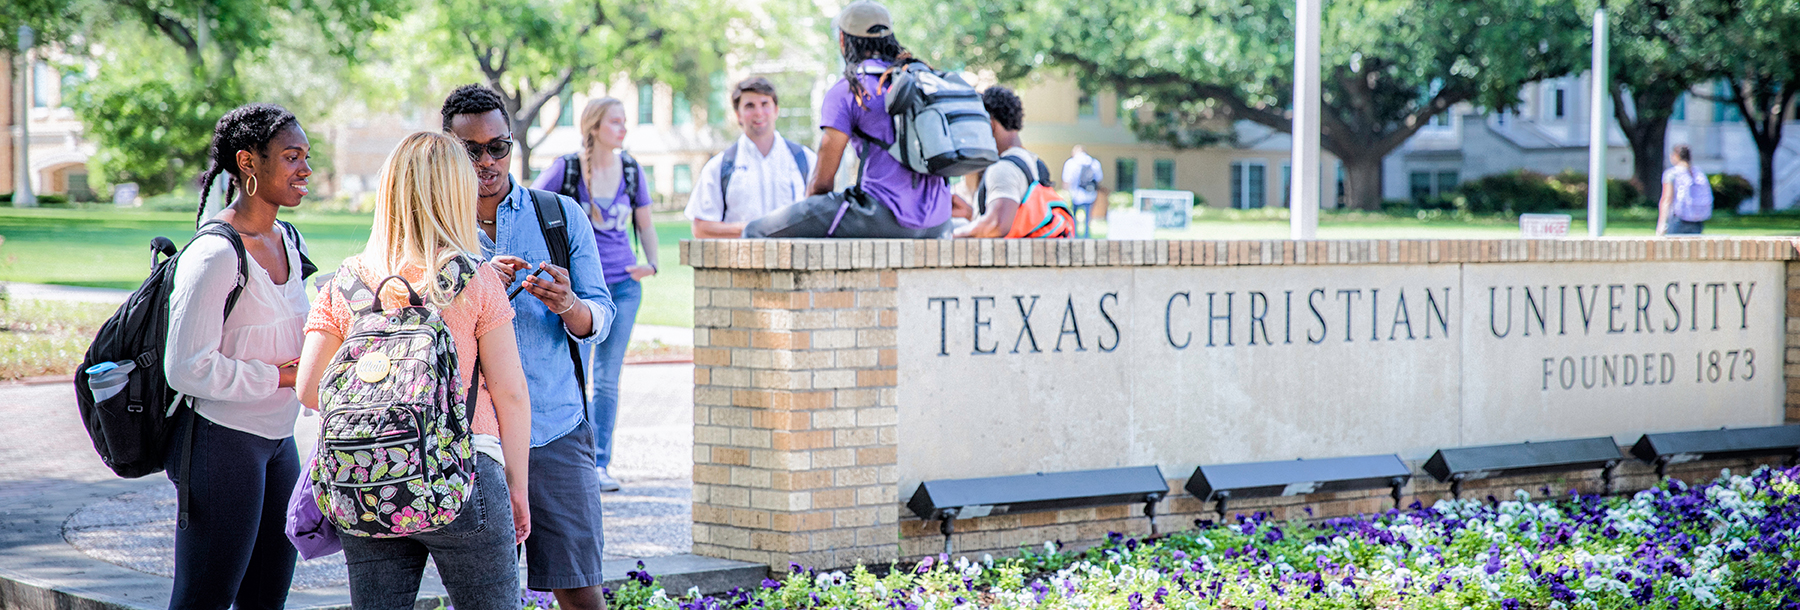 Section Image: diverse students at the TCU sign